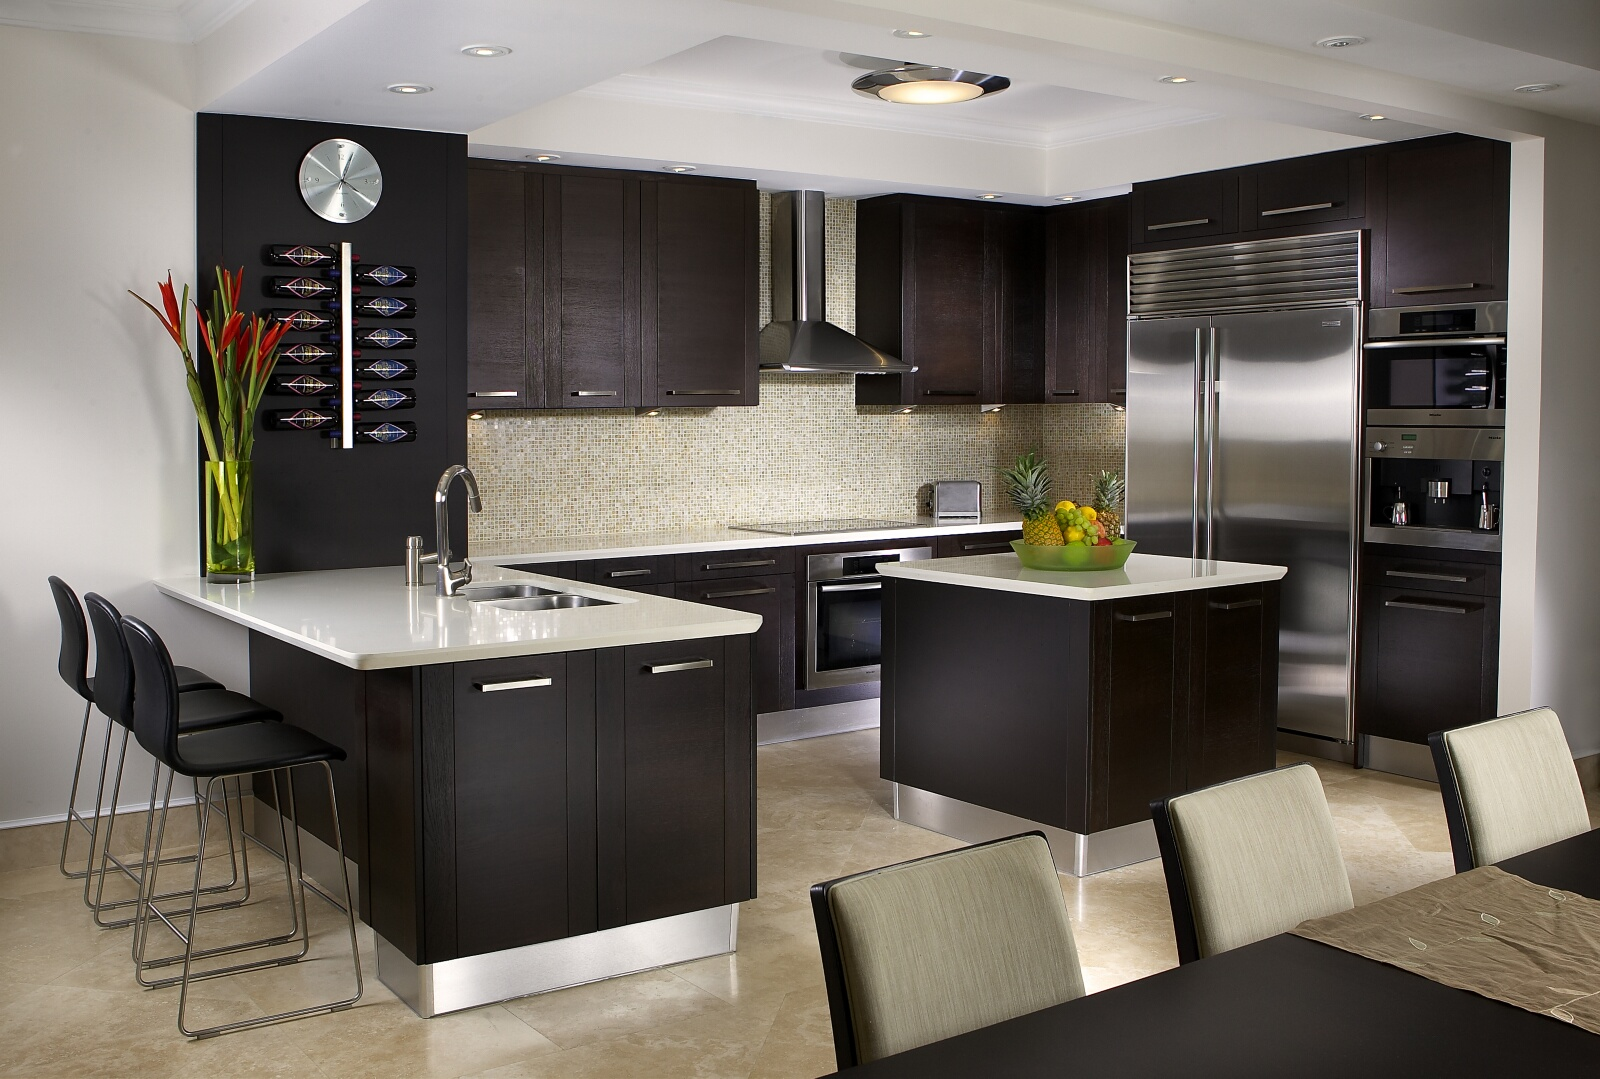 Kitchen interior design services miami florida for Interior design ideas for kitchen